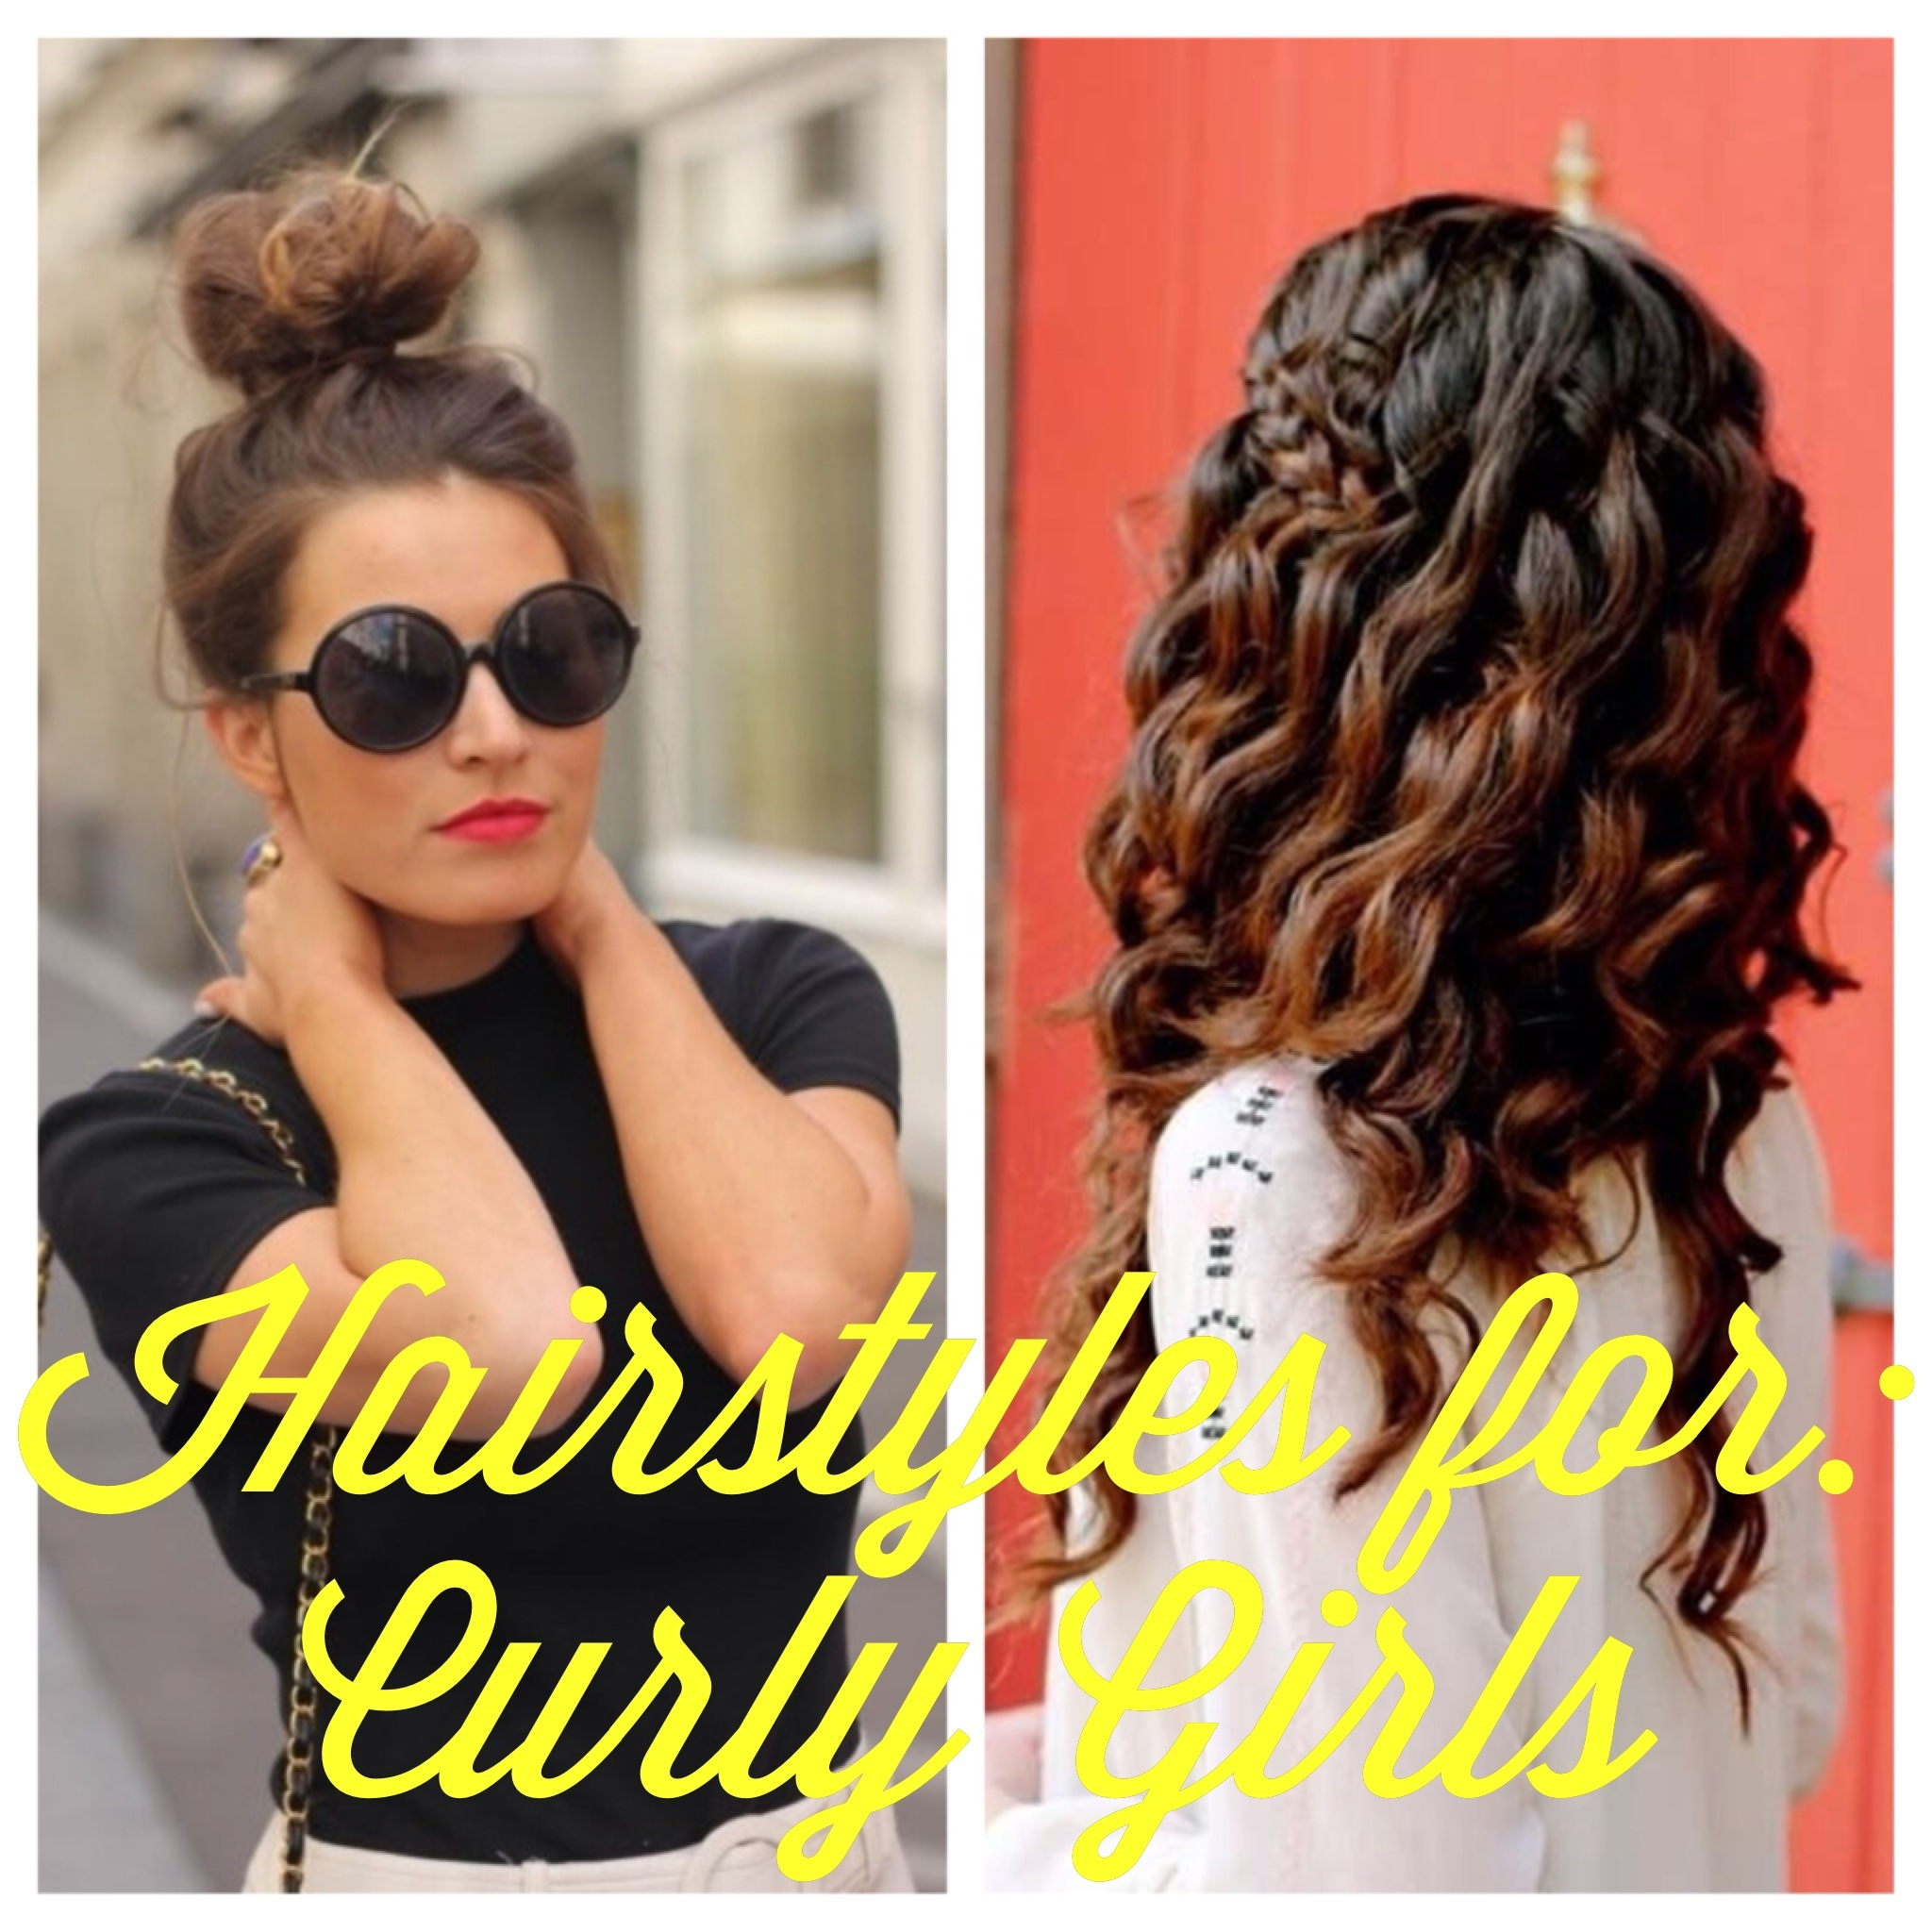 Blogust Day 28 Hairstyles For Curly Girls Classy Girl With Curls